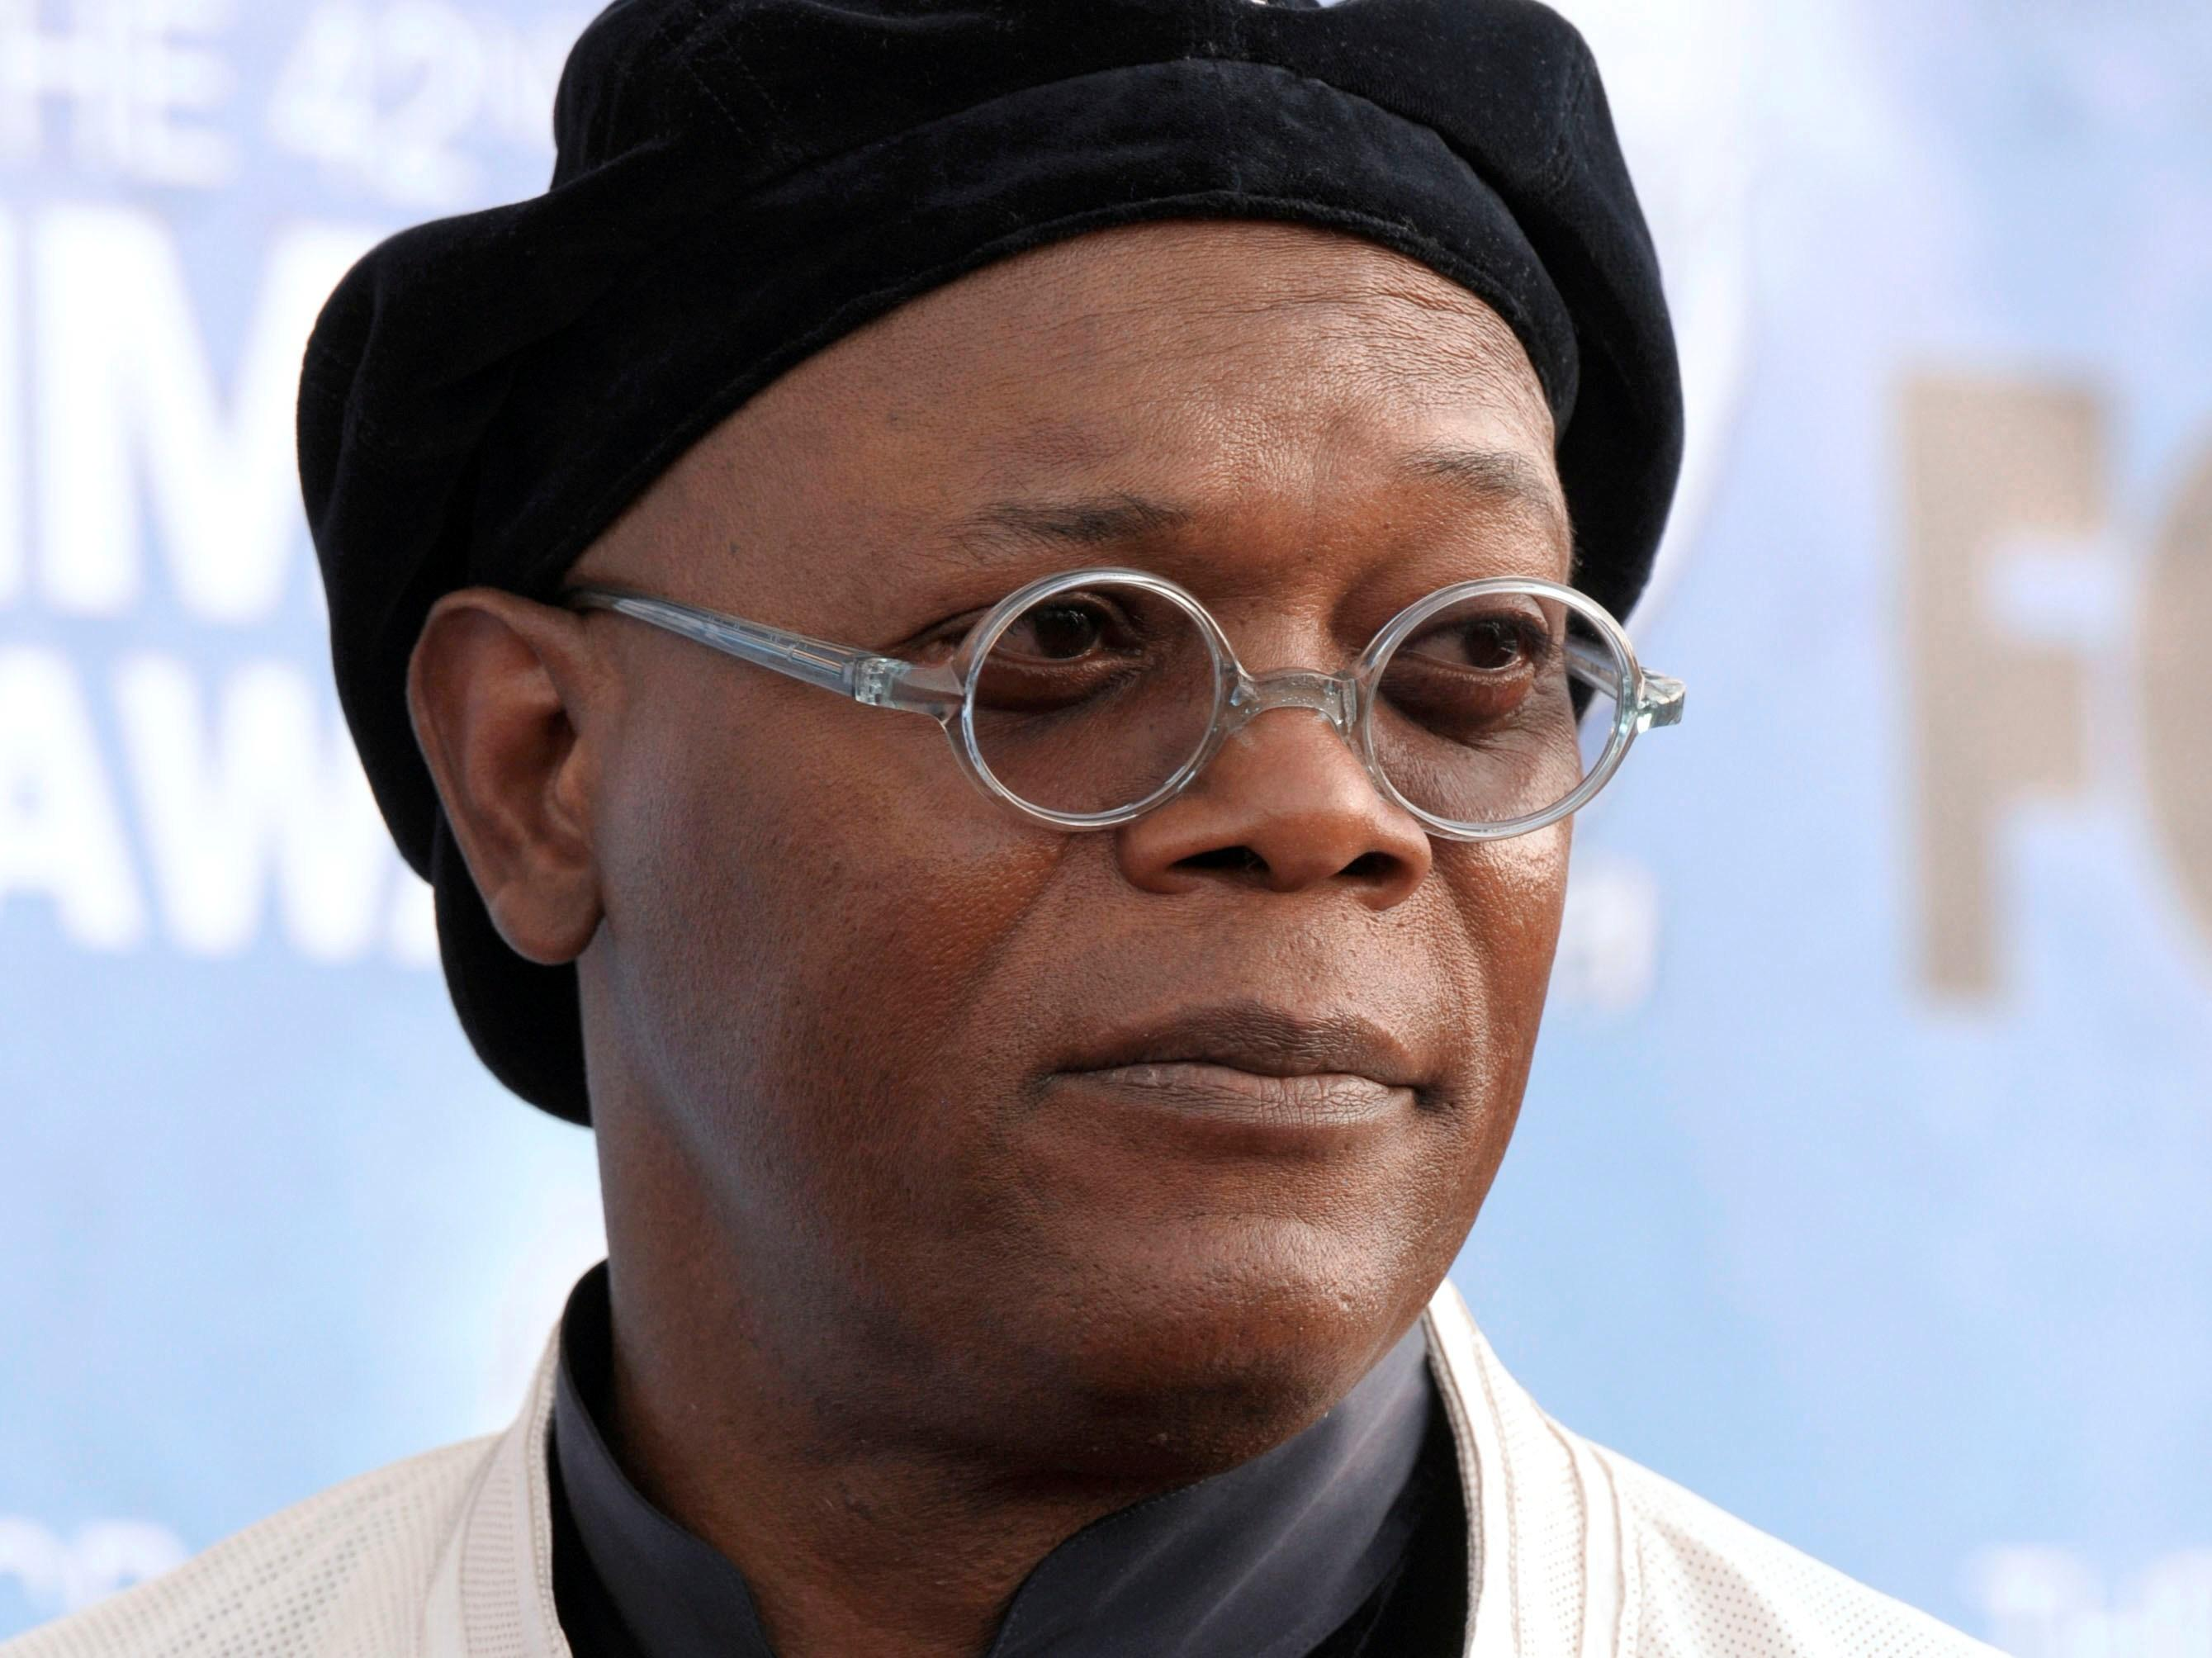 Samuel Jackson Backgrounds